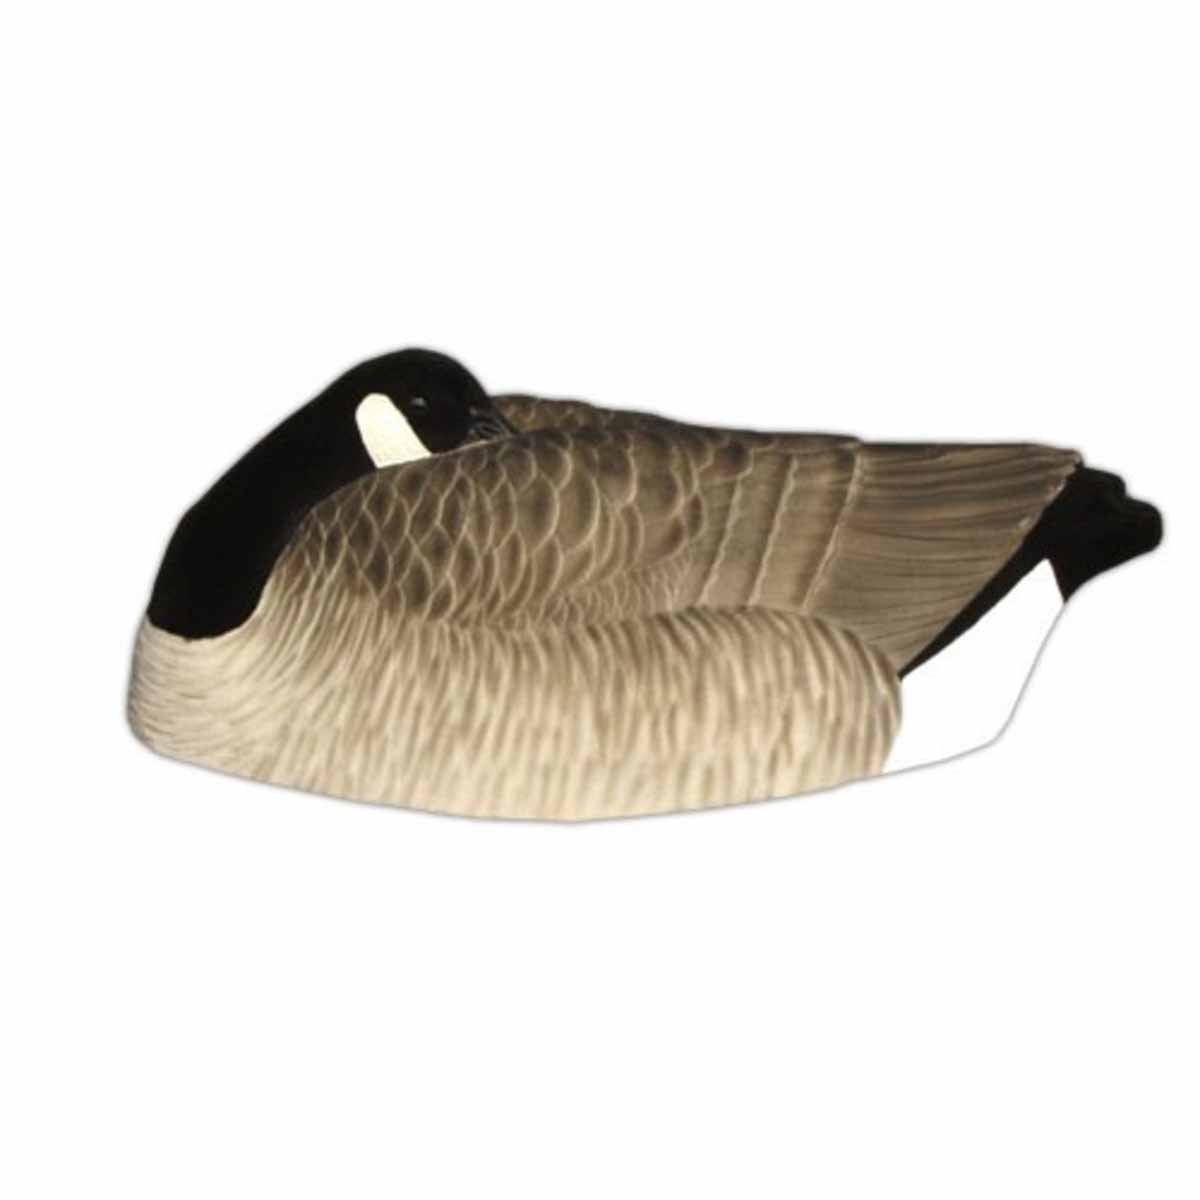 Dakota Decoy Flocked One Piece Canada Sleeper Shell Decoys, 12-Pack_1.jpg